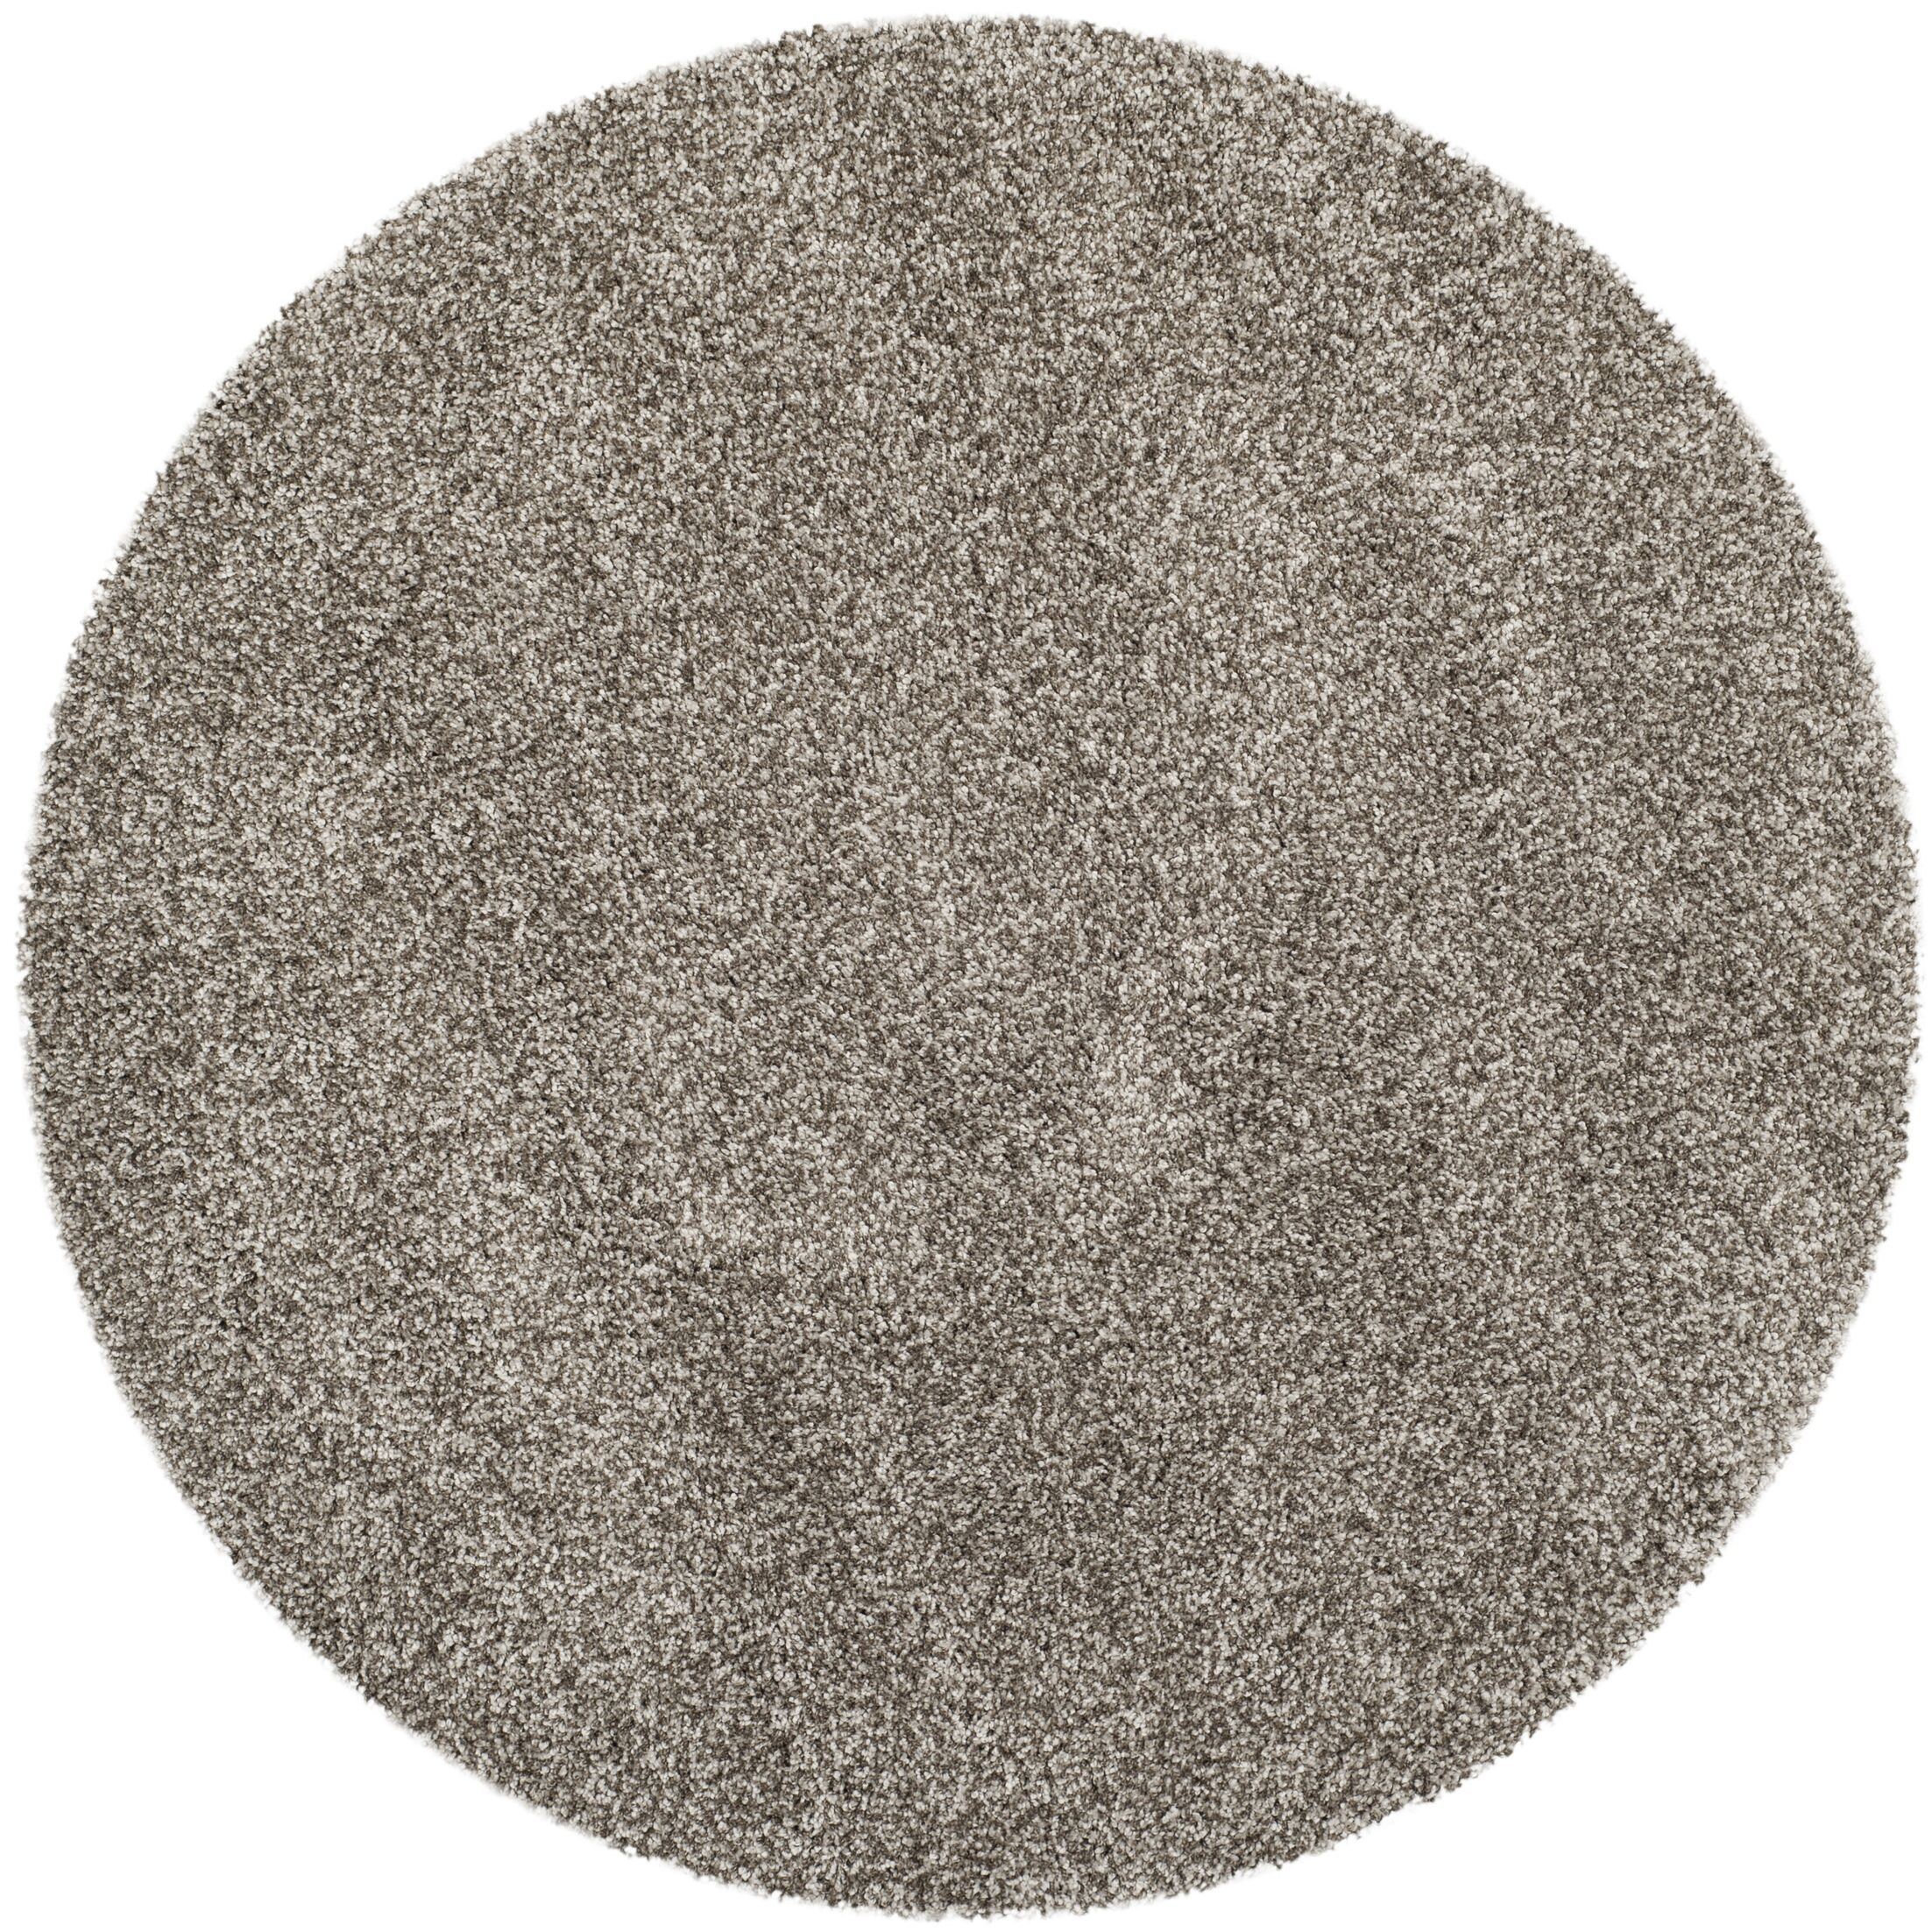 Starr Hill Grey Area Rug Rug Size: Round 5'1